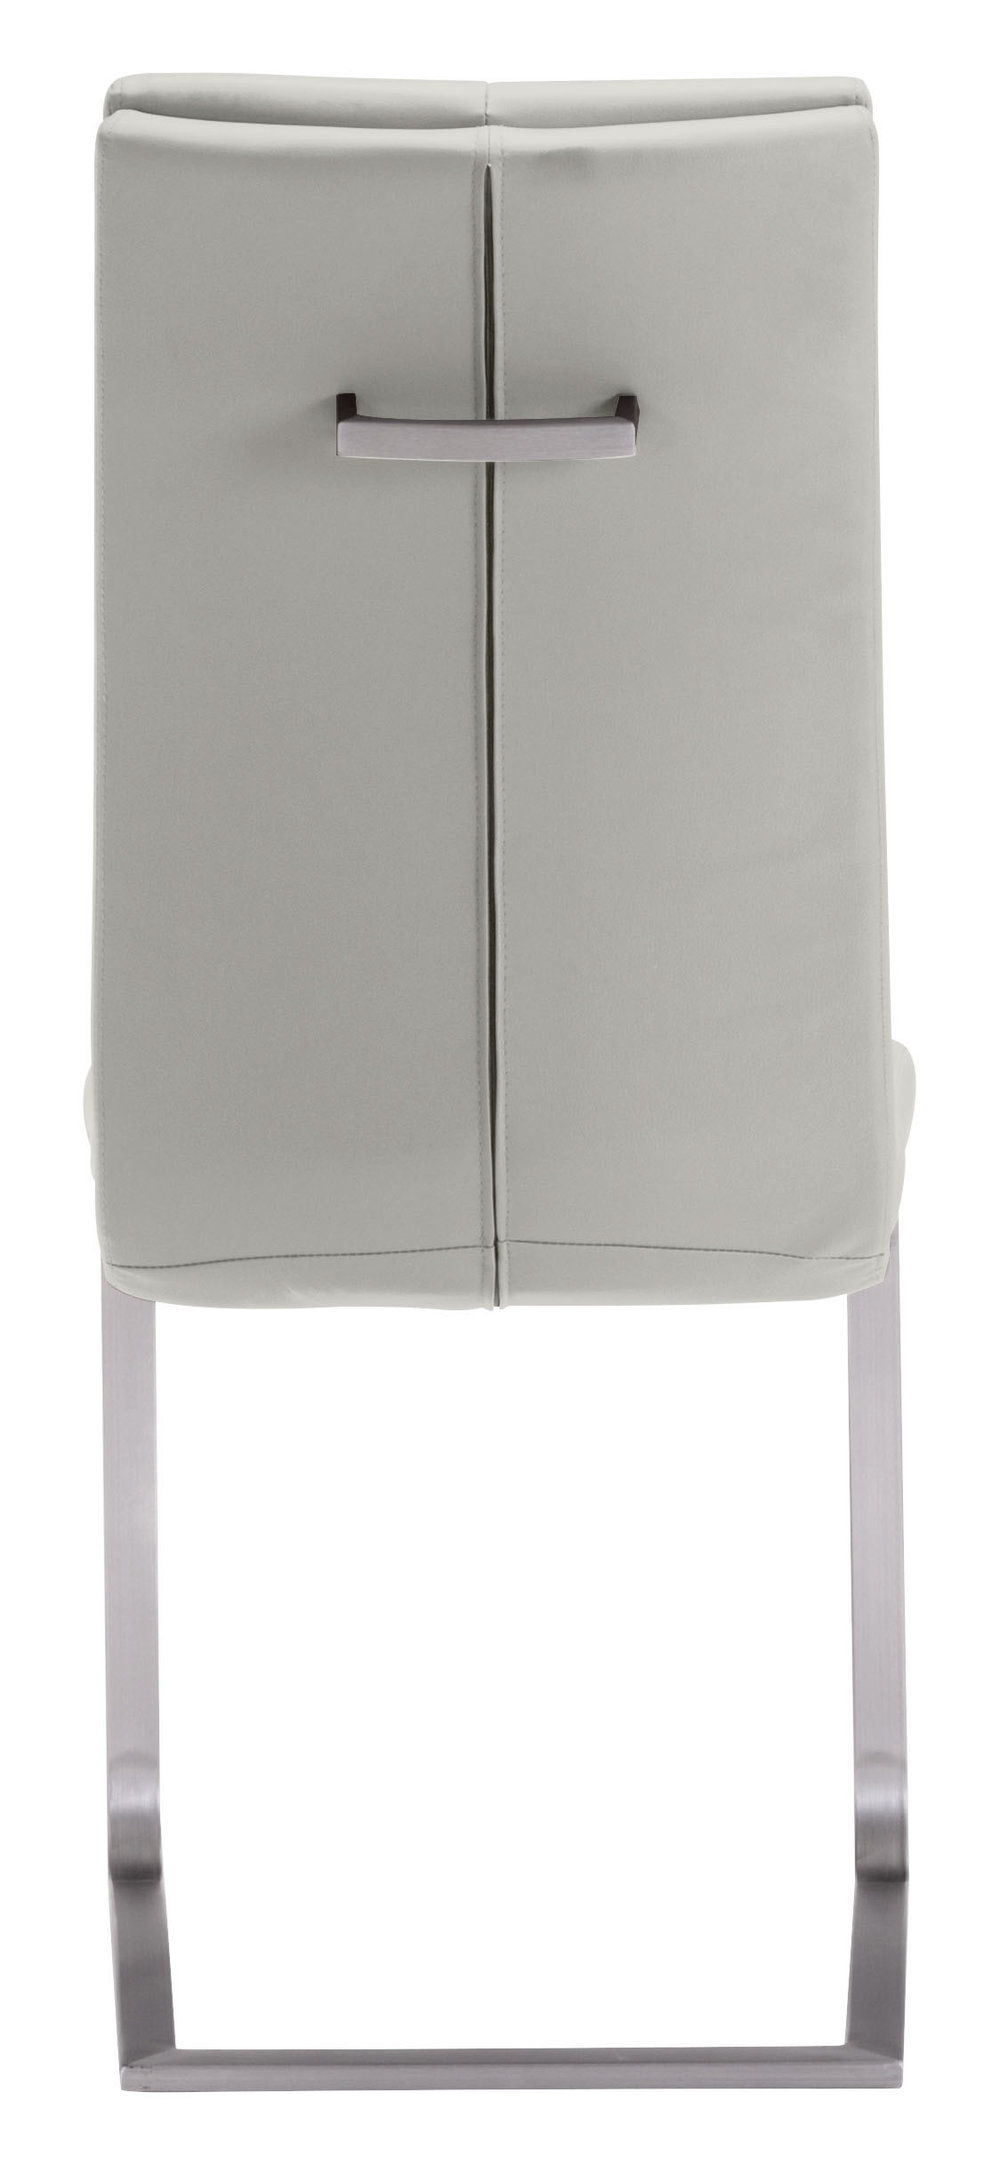 ZUO MODERN CONTEMPORARY, INC - Rosemont Dining Chair - Set of 2 - Taupe